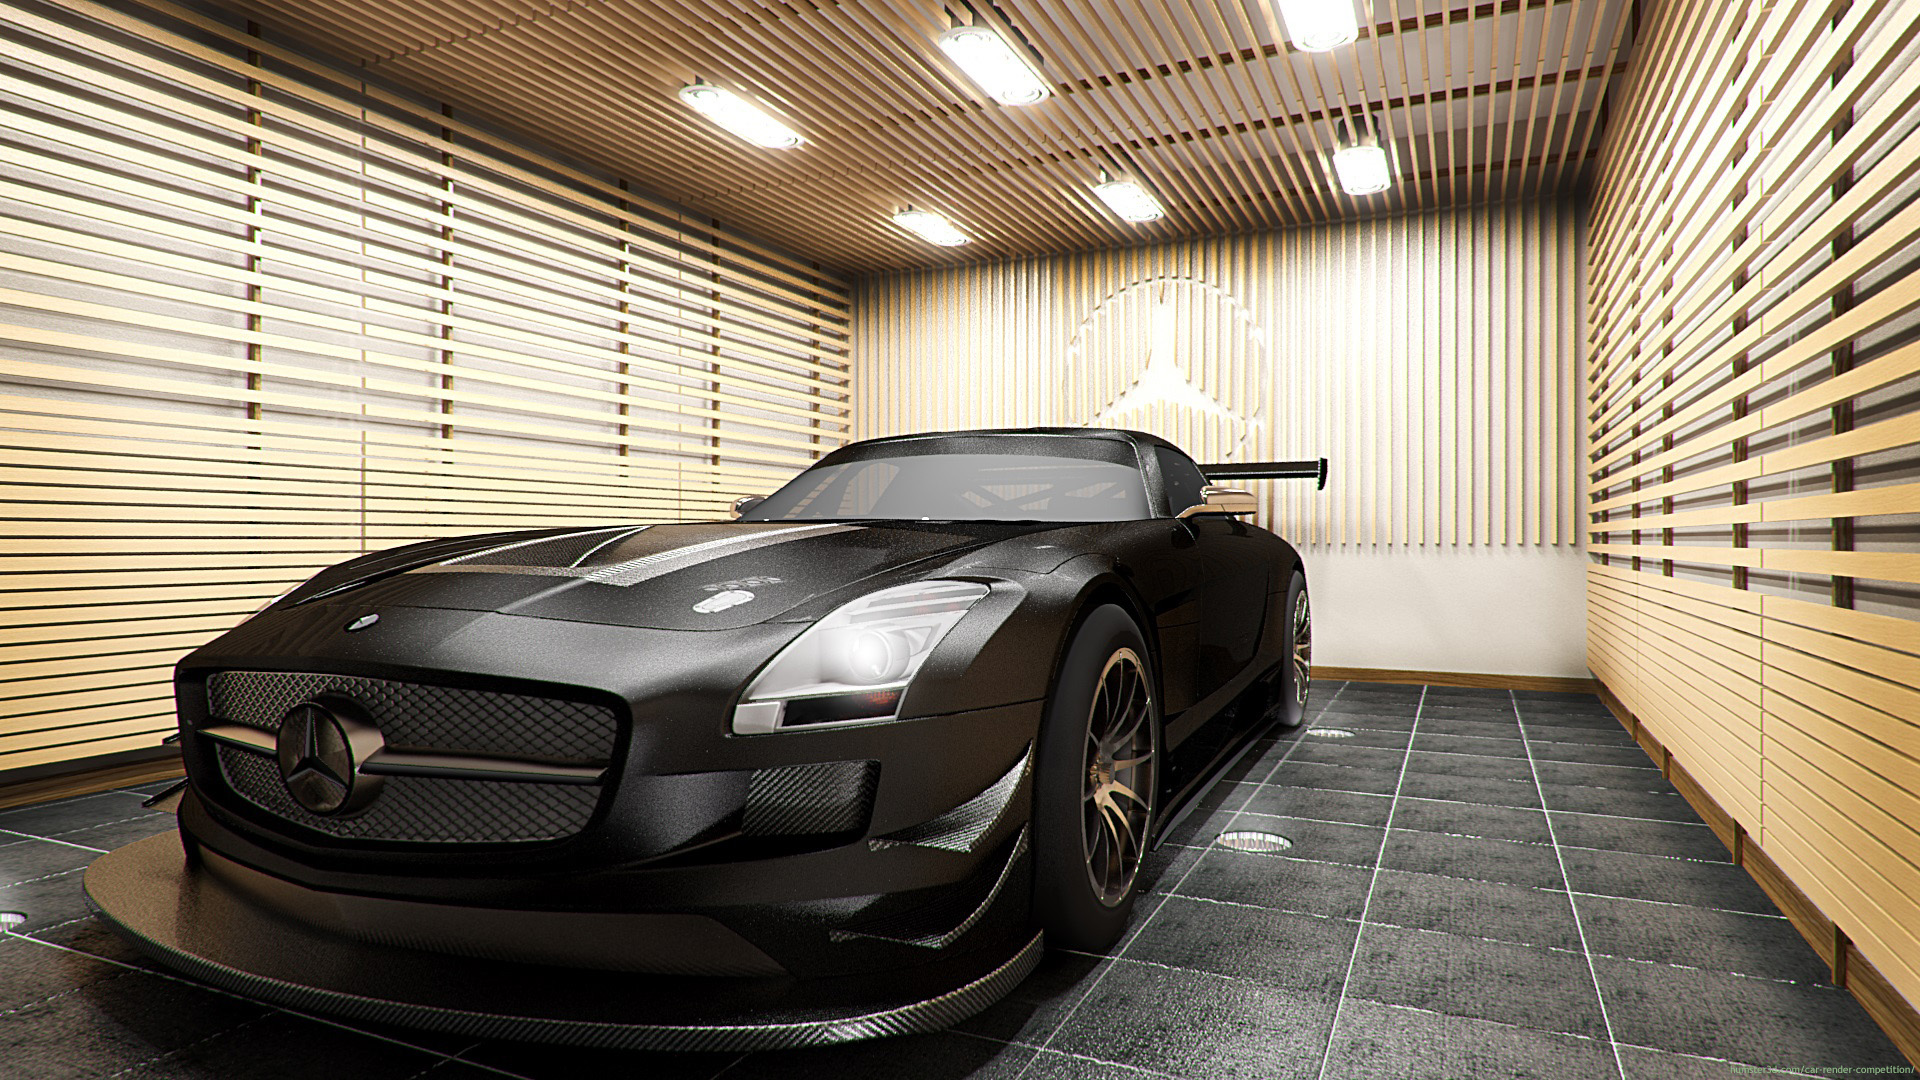 2011 Mercedes-Benz SLS AMG Black 3d art